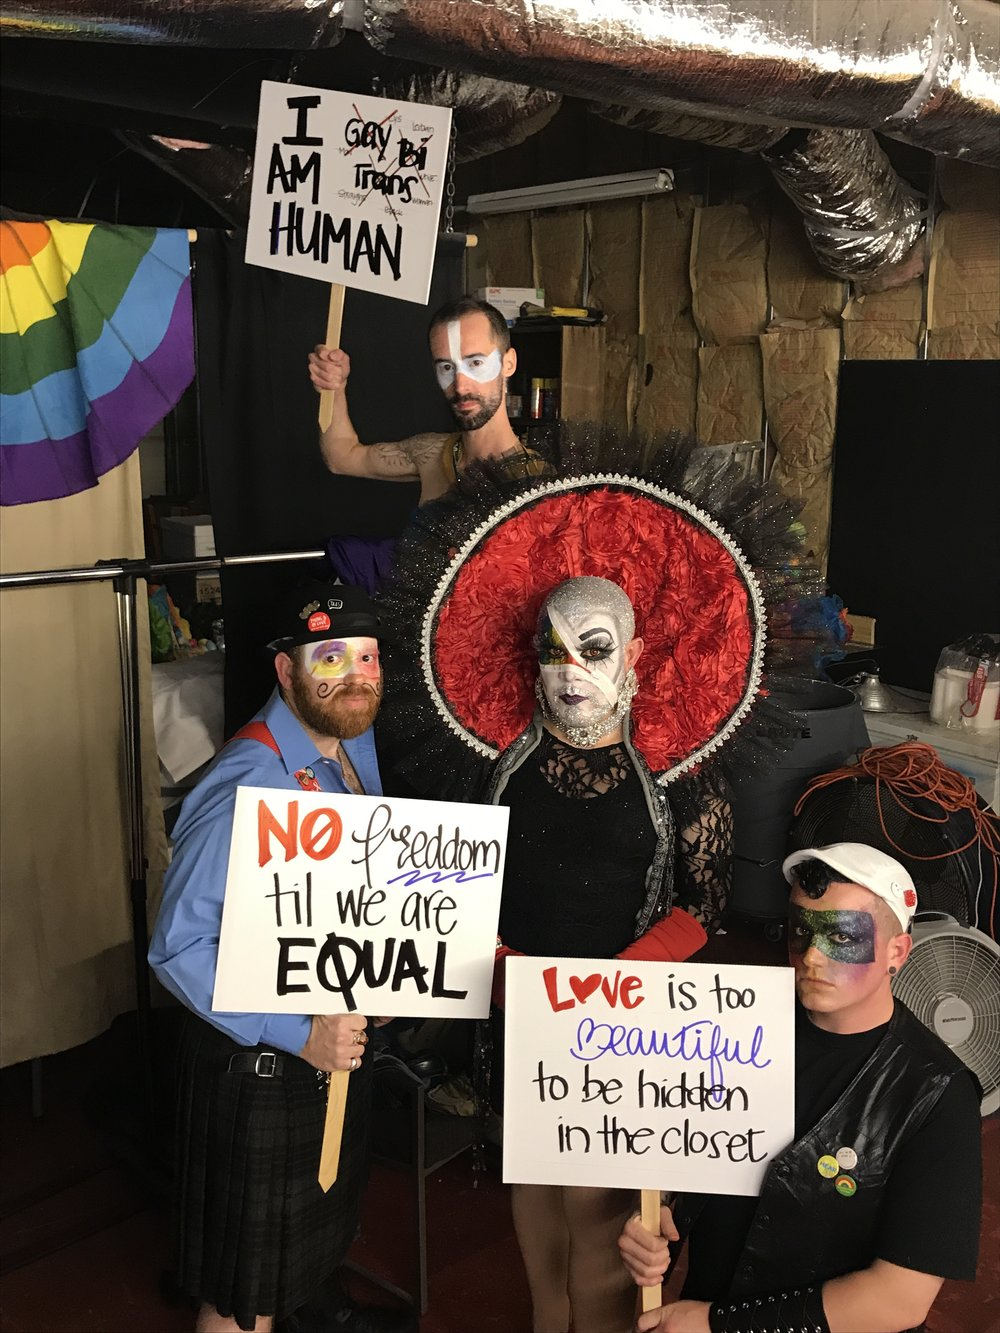 June 24, 2017 - Stonewall Commemoration Drag Show